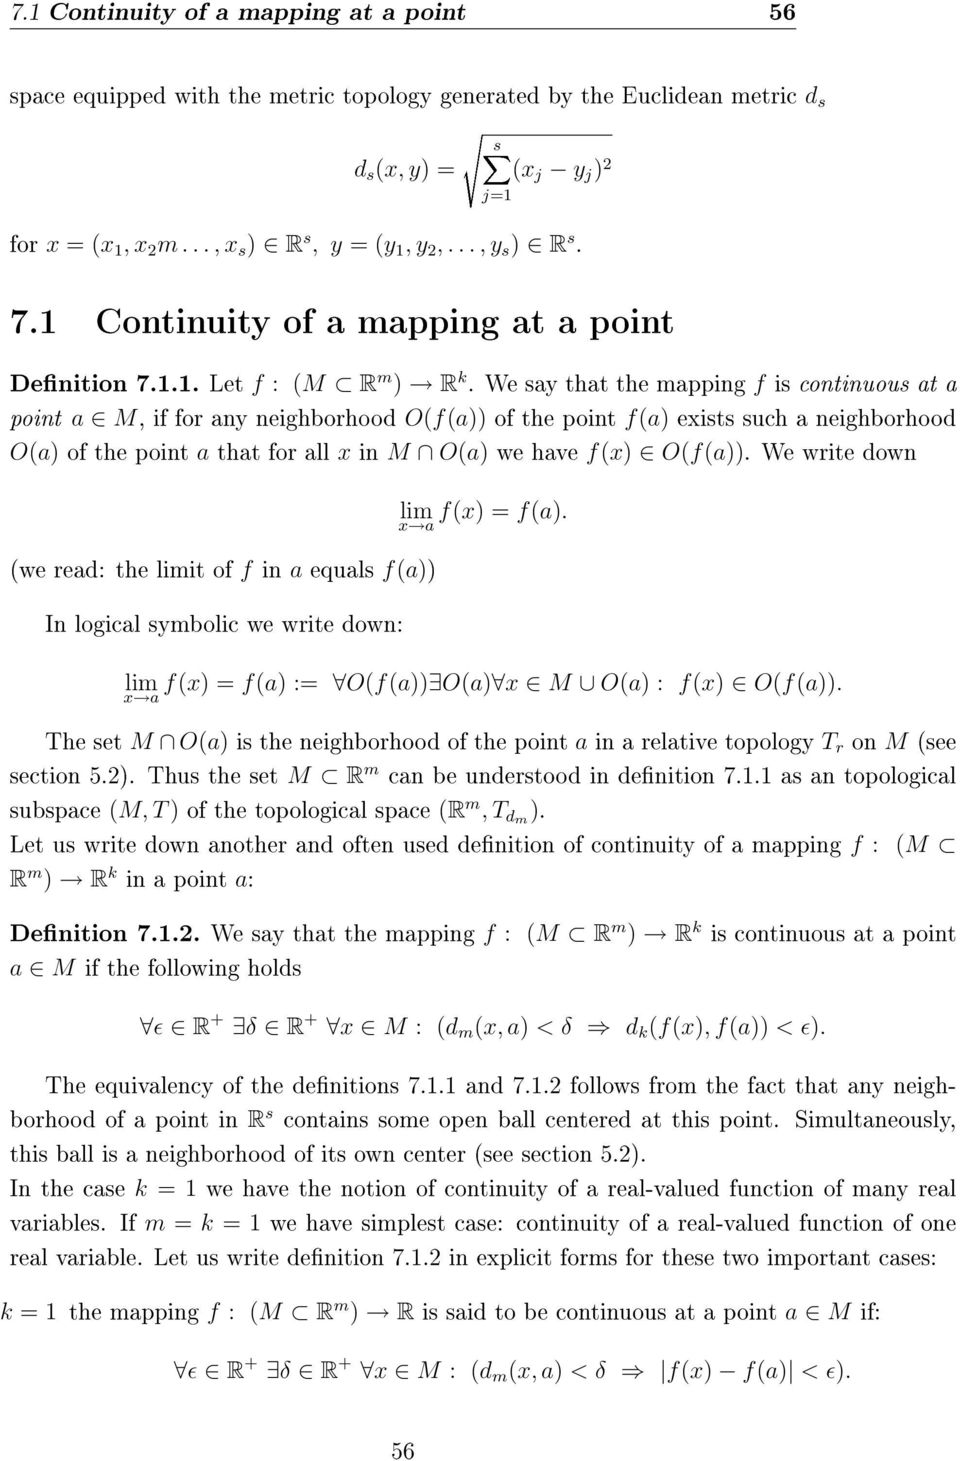 We say that the mapping f is continuous at a point a M, if for any neighborhood O(f(a)) of the point f(a) exists such a neighborhood O(a) of the point a that for all x in M O(a) we have f(x) O(f(a)).